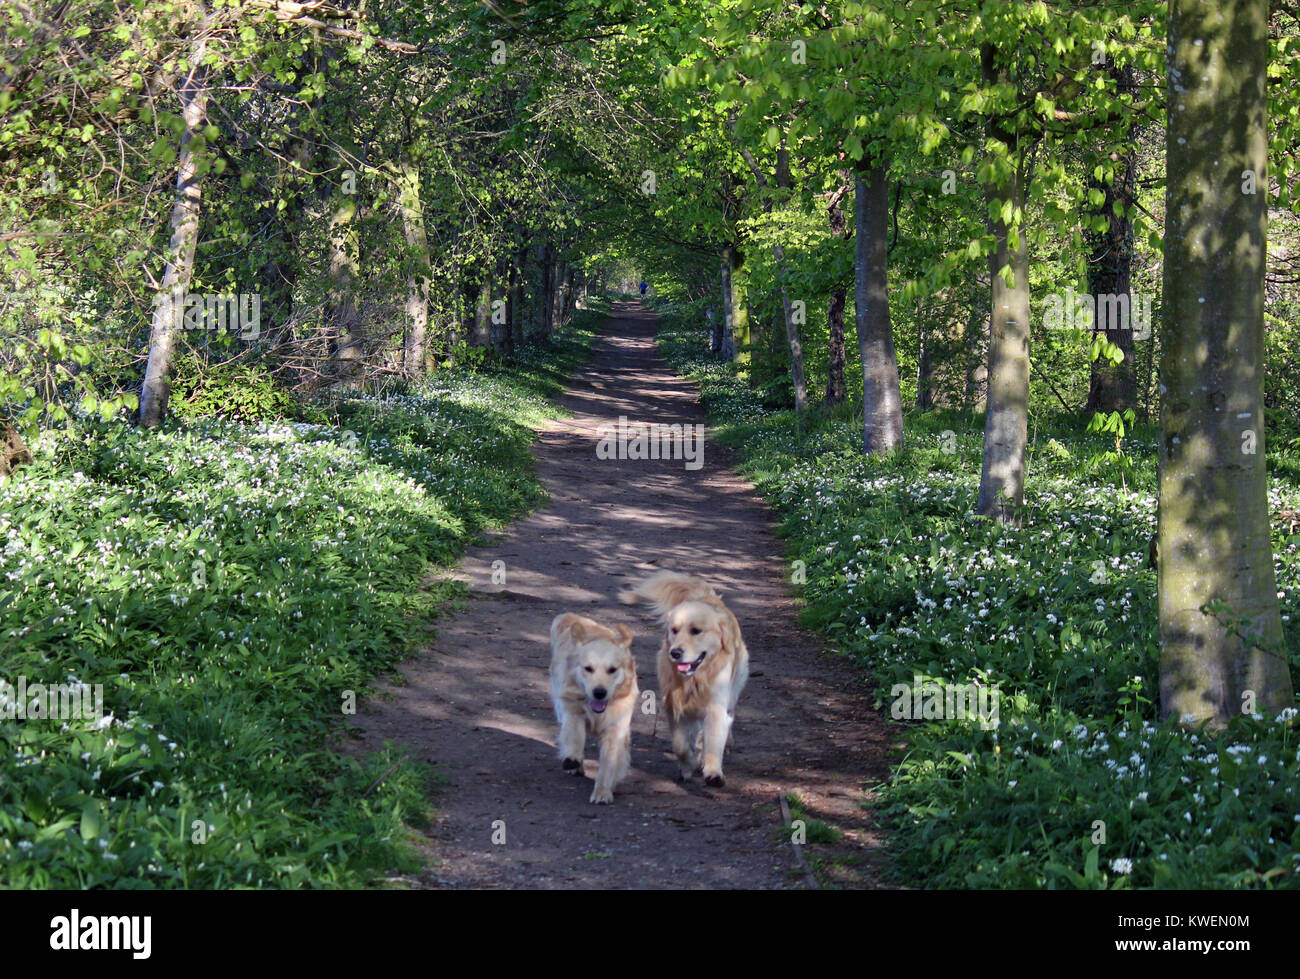 Two Golden Retrievers walking through the woods - Stock Image